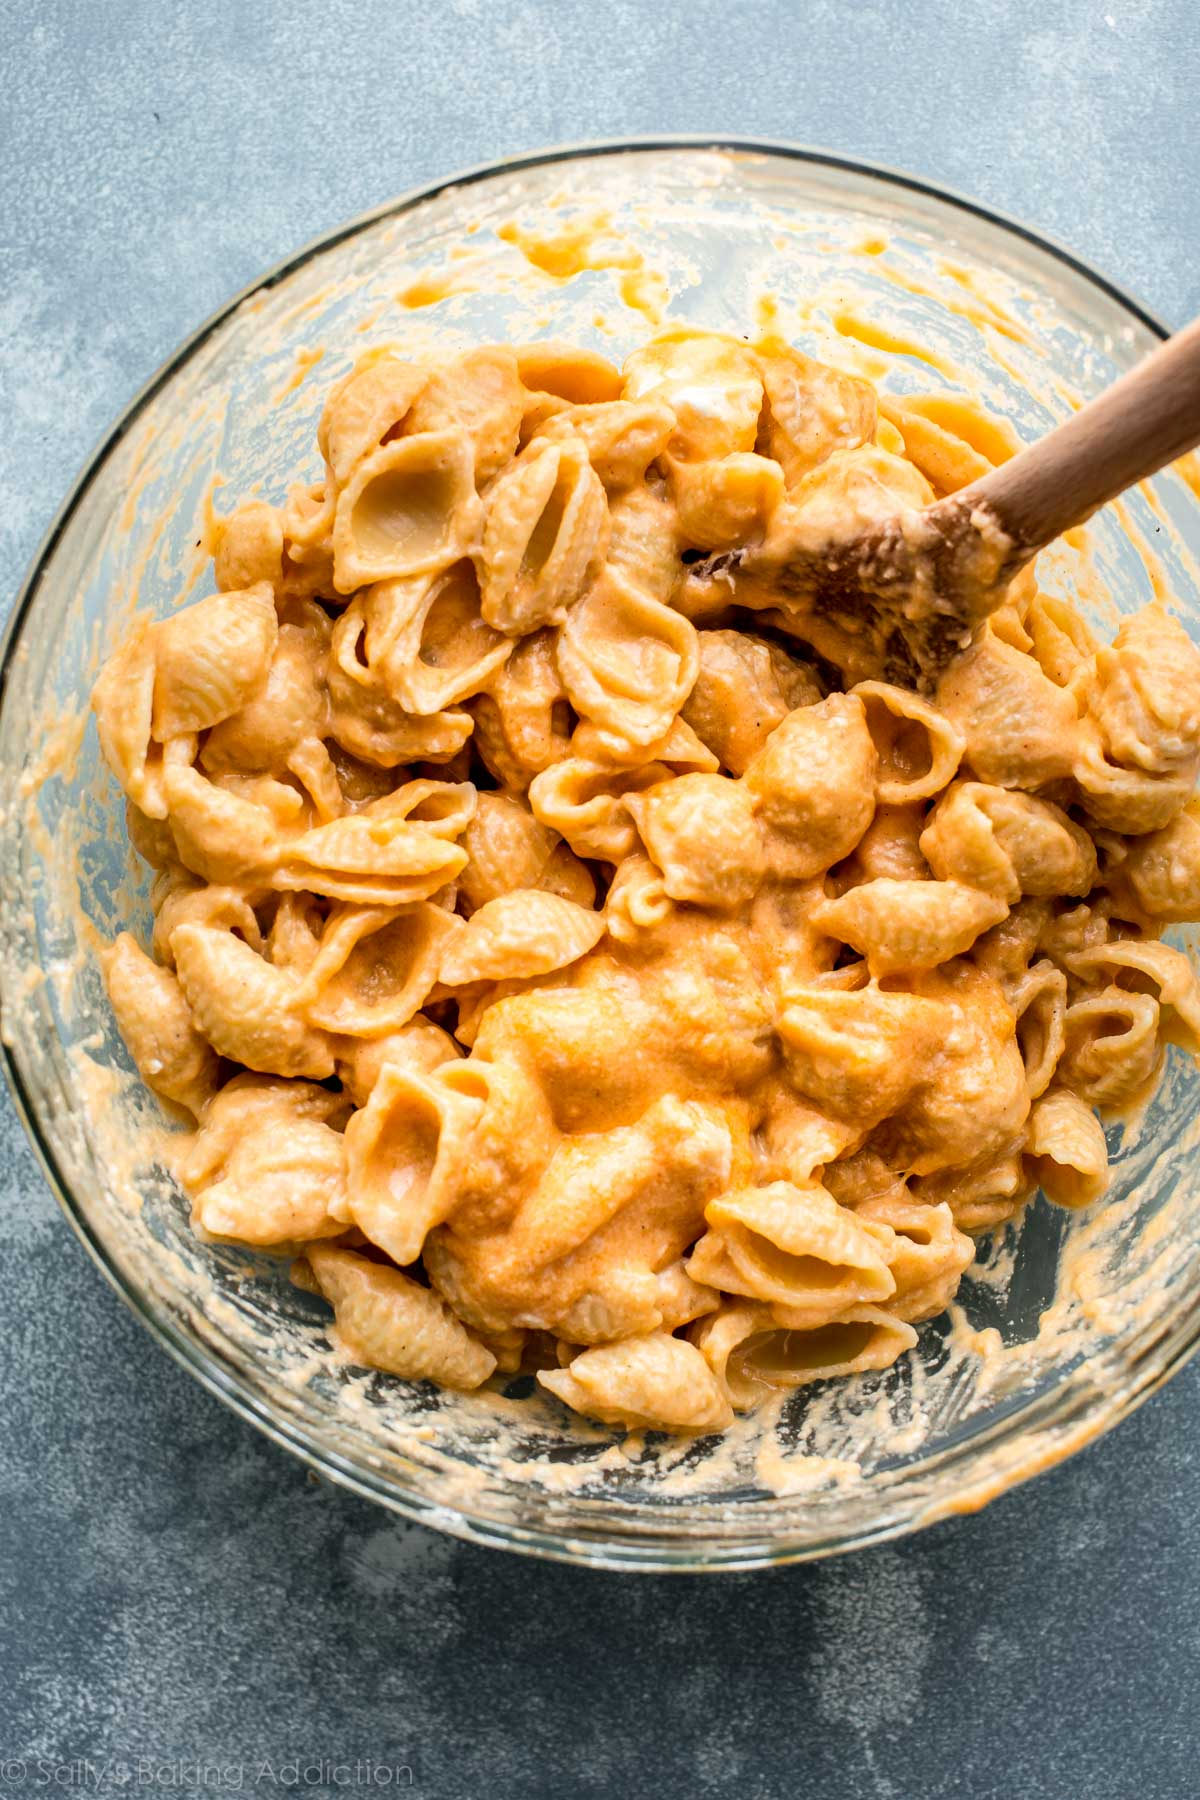 Easy baked macaroni and cheese with the creamiest, most flavorful cheesy sauce! Recipe on sallysbakingaddiction.com